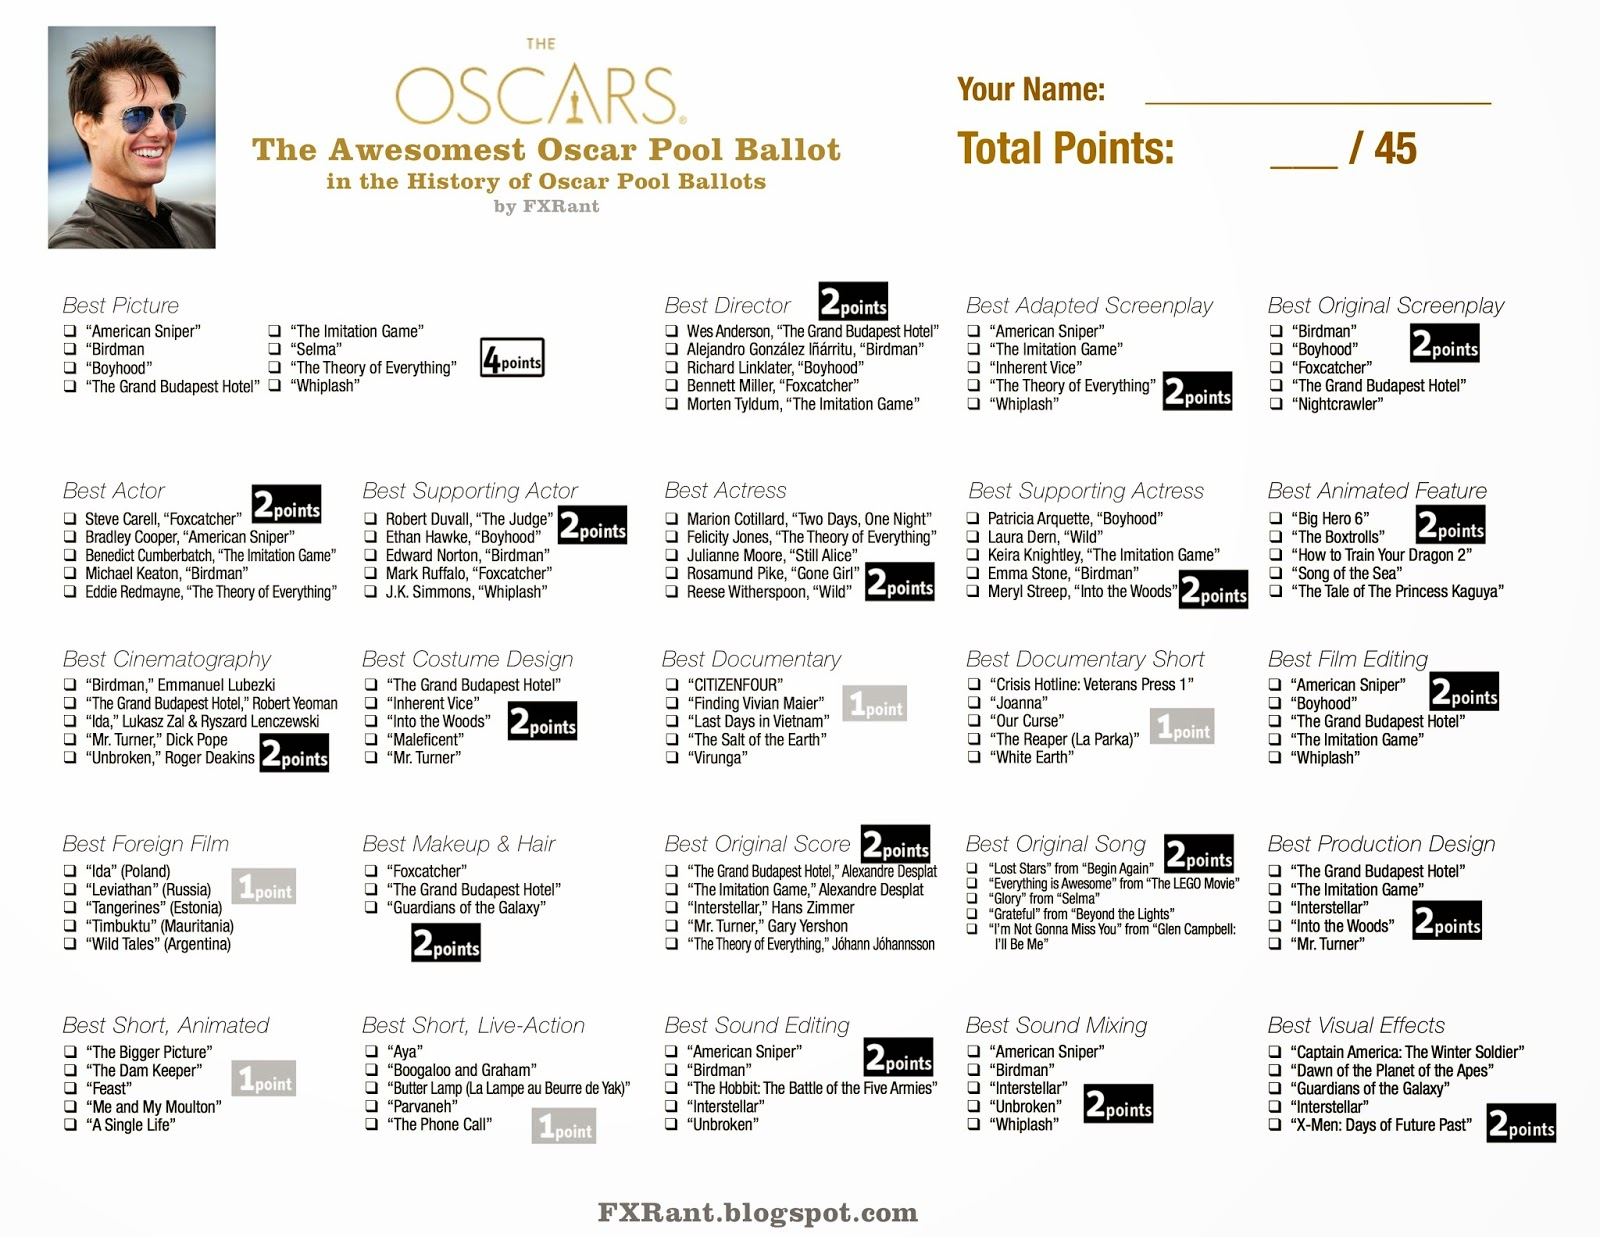 Oscar Nominations 2017 Full List further Screen Actors Guild Awards Printable Ballot together with Emmy Award Ballot Print At Home Andy Samberg 13579086 together with 2013 Oscar Winners And Nominees  plete List besides Your Oscar Party Essentials Ballot. on oscar nominations 2017 printable